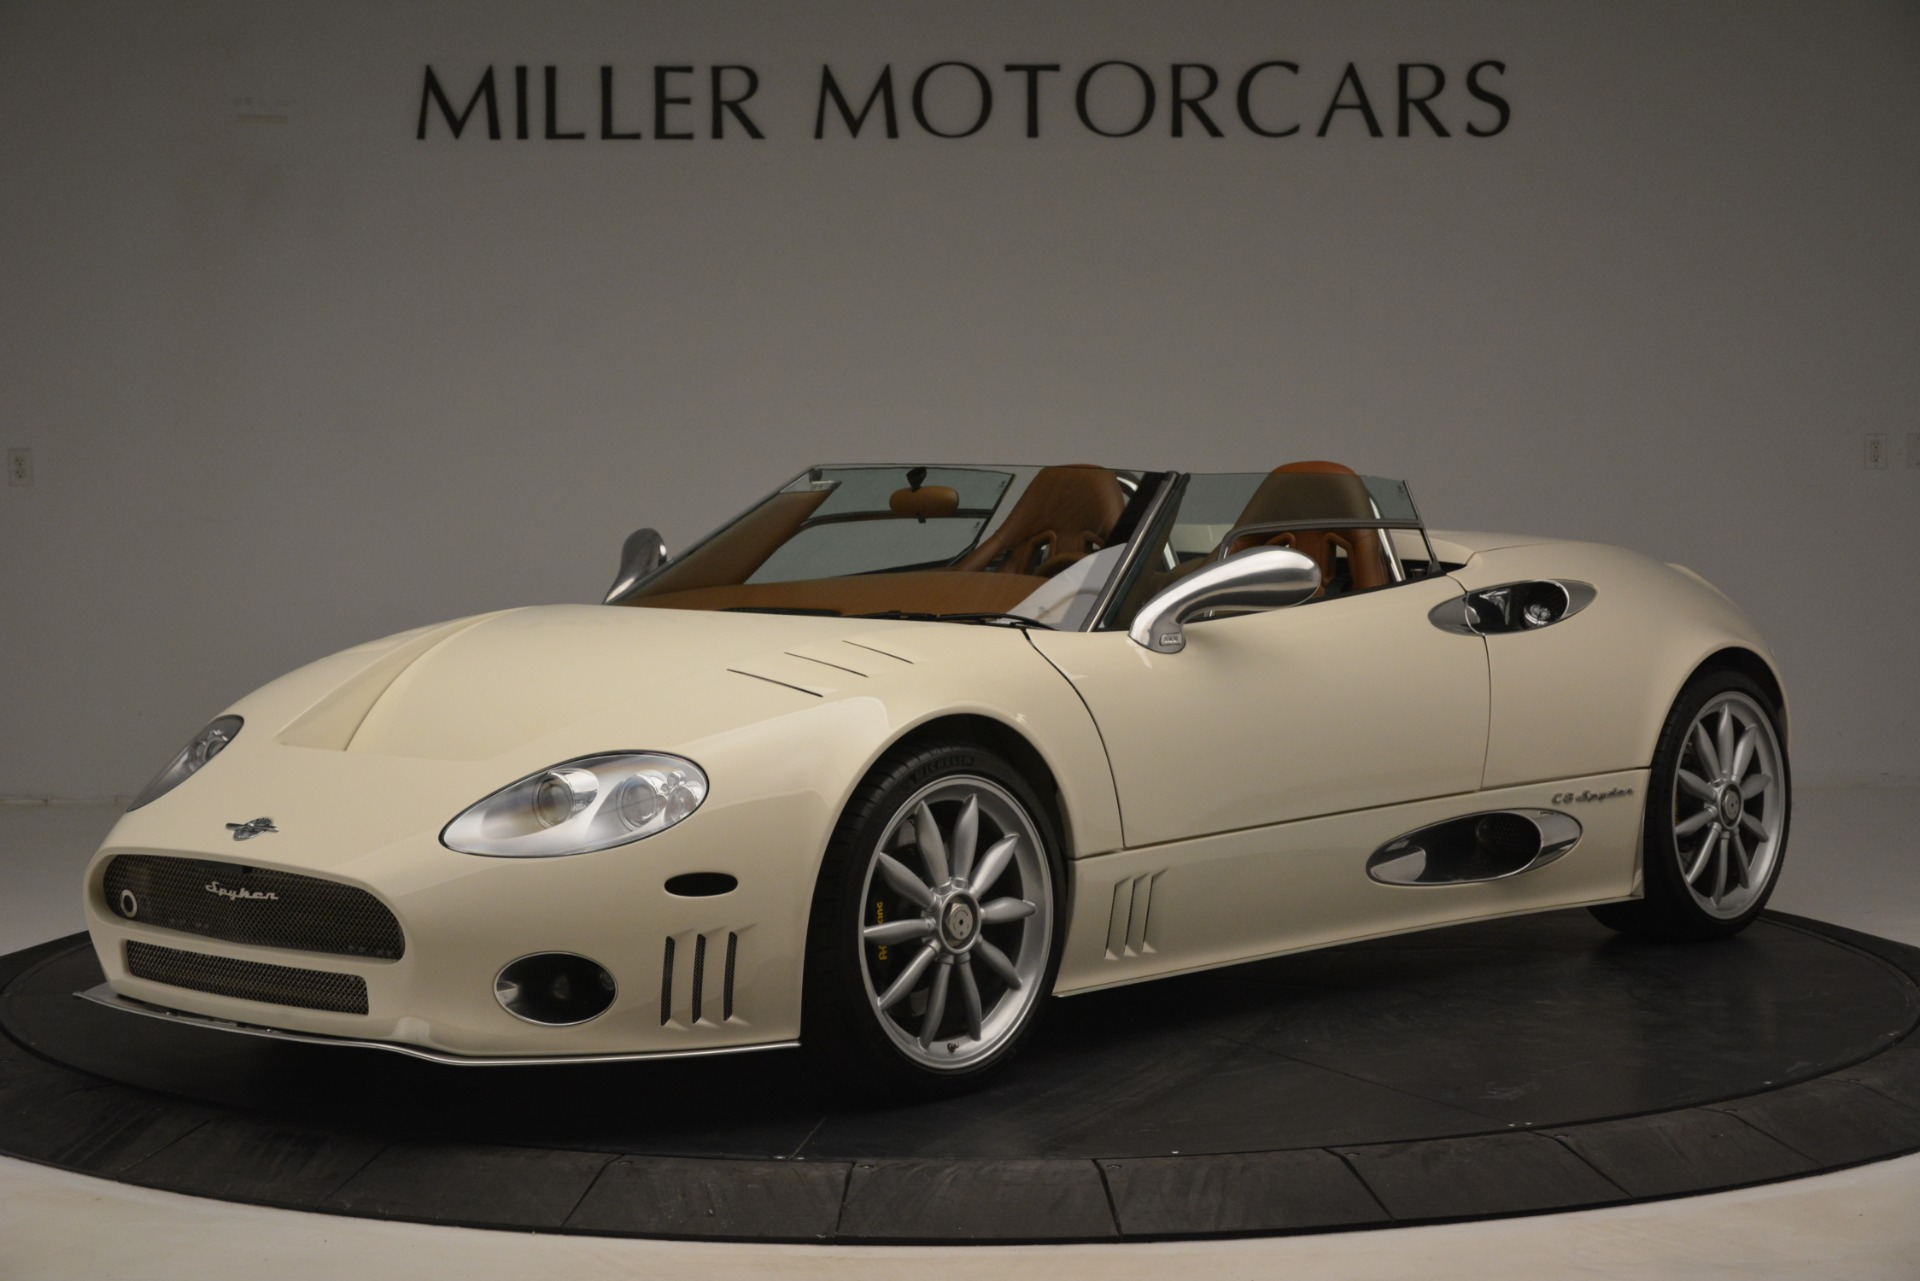 Used 2006 Spyker C8 Spyder  For Sale In Westport, CT 1661_p2